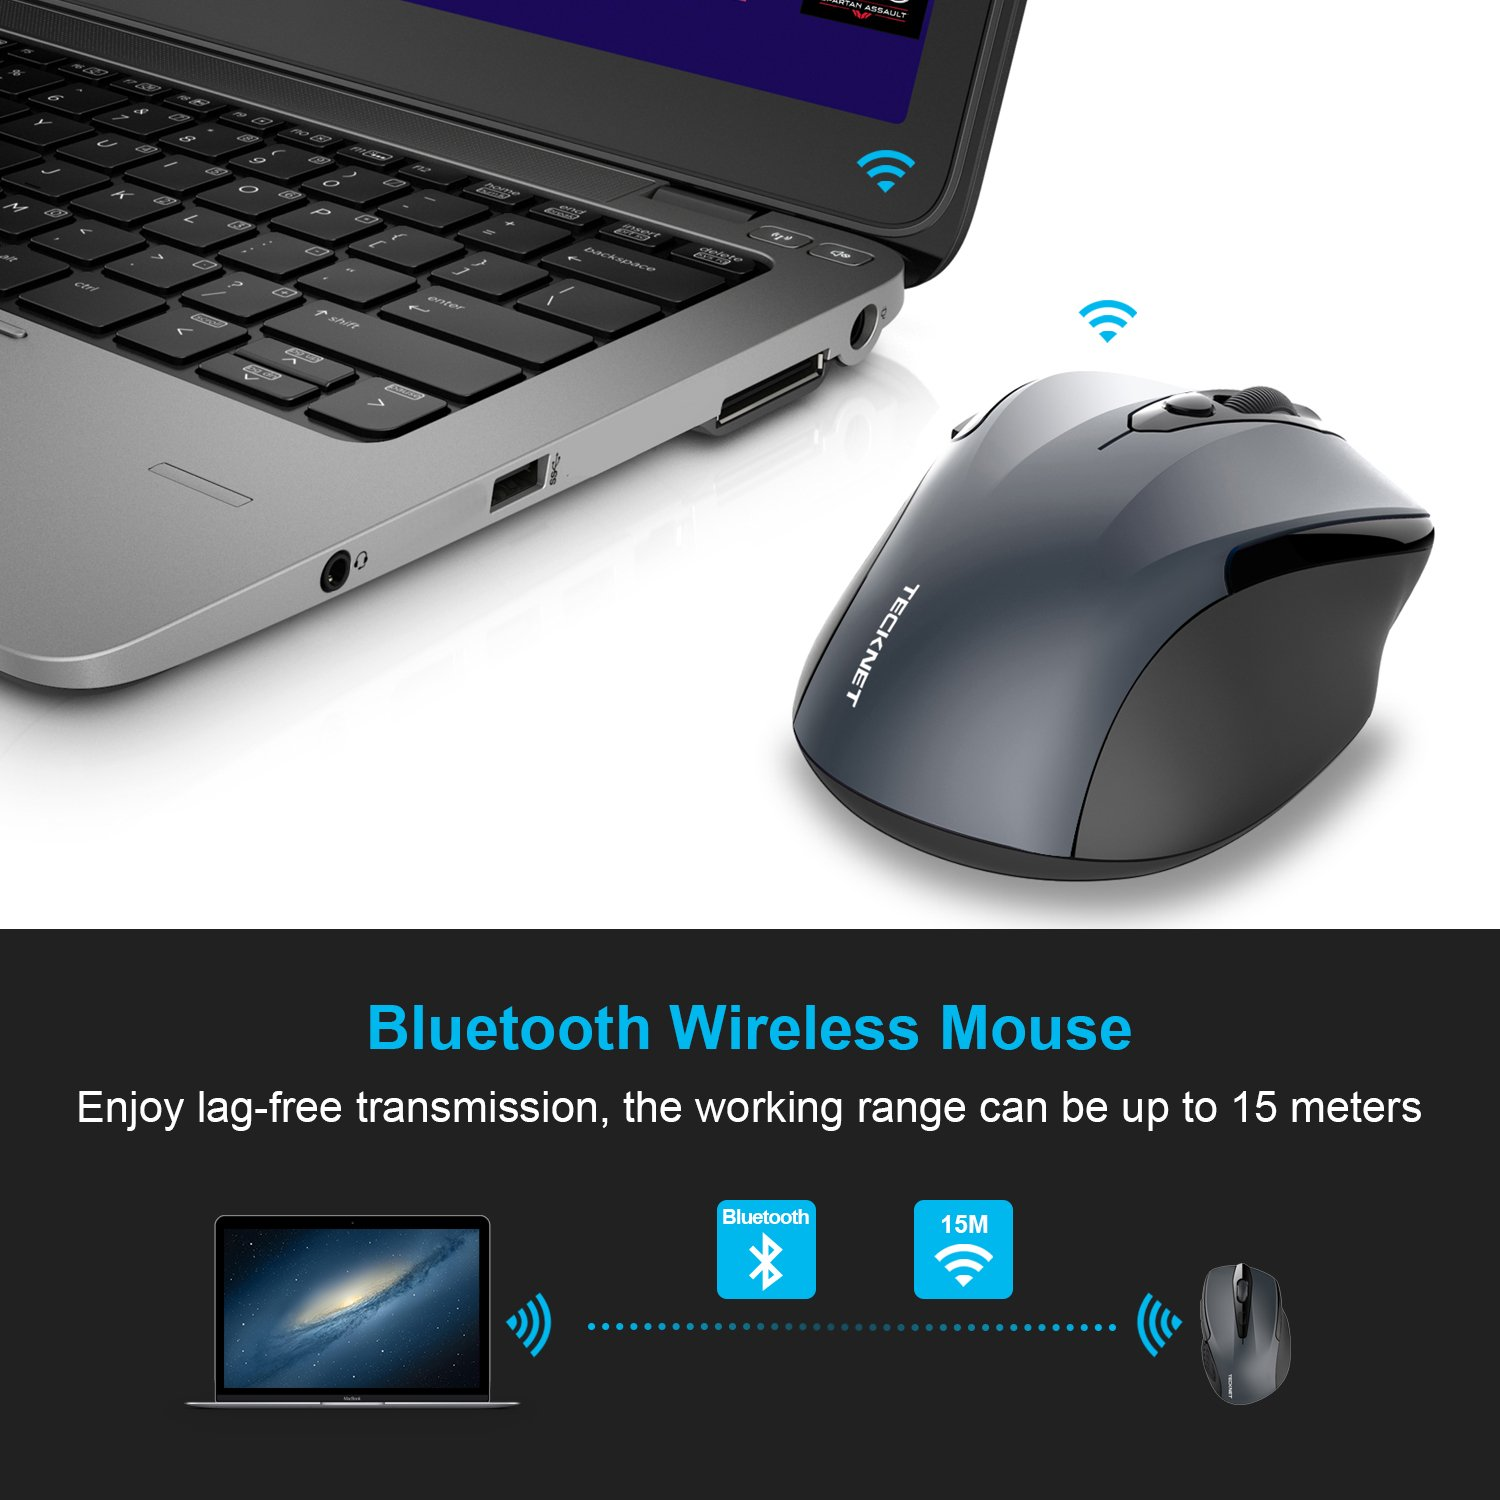 d3e747d7b91 TeckNet Bluetooth Mouse, 2600DPI Adjustable Wireless Mouse With 24 Months  Battery Life Cordless Mice for PC/Tablet/Laptop Portable Small Travel Mouse:  ...